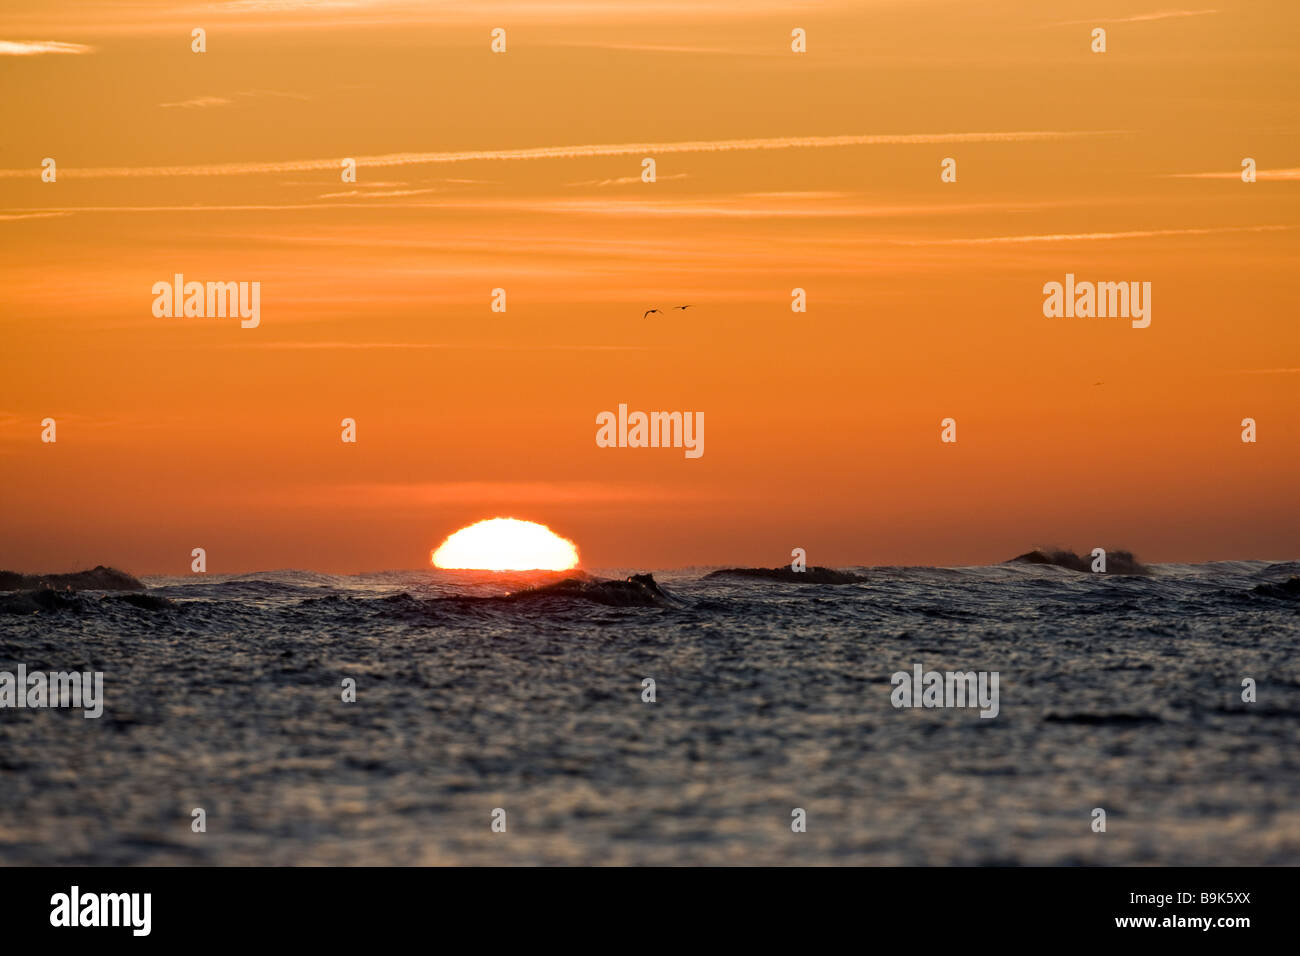 Rising sun appearing flattened due to the effect of atmospheric refraction, Lincolnshire December 2008 - Stock Image